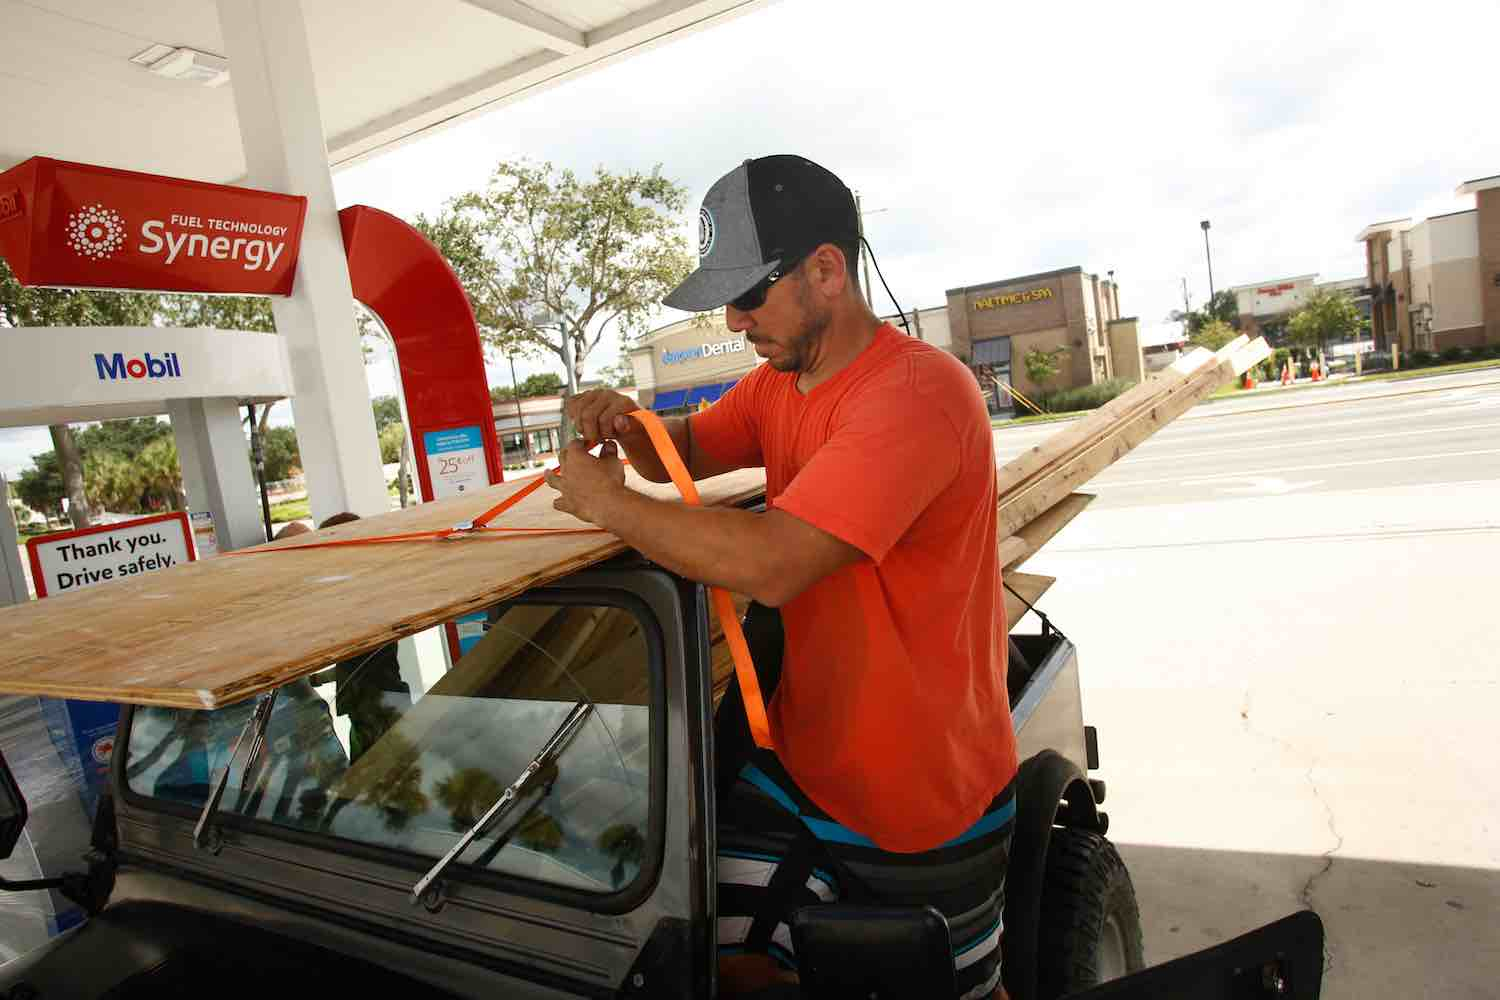 "<div class=""meta image-caption""><div class=""origin-logo origin-image kgo""><span>kgo</span></div><span class=""caption-text"">Danny Calvo secures lumber he intends to use to board up his home before evacuating as residents and visitors in Florida prepare for, and evacuate ahead of, Hurricane Irma. (Brian Blanco/Getty)</span></div>"